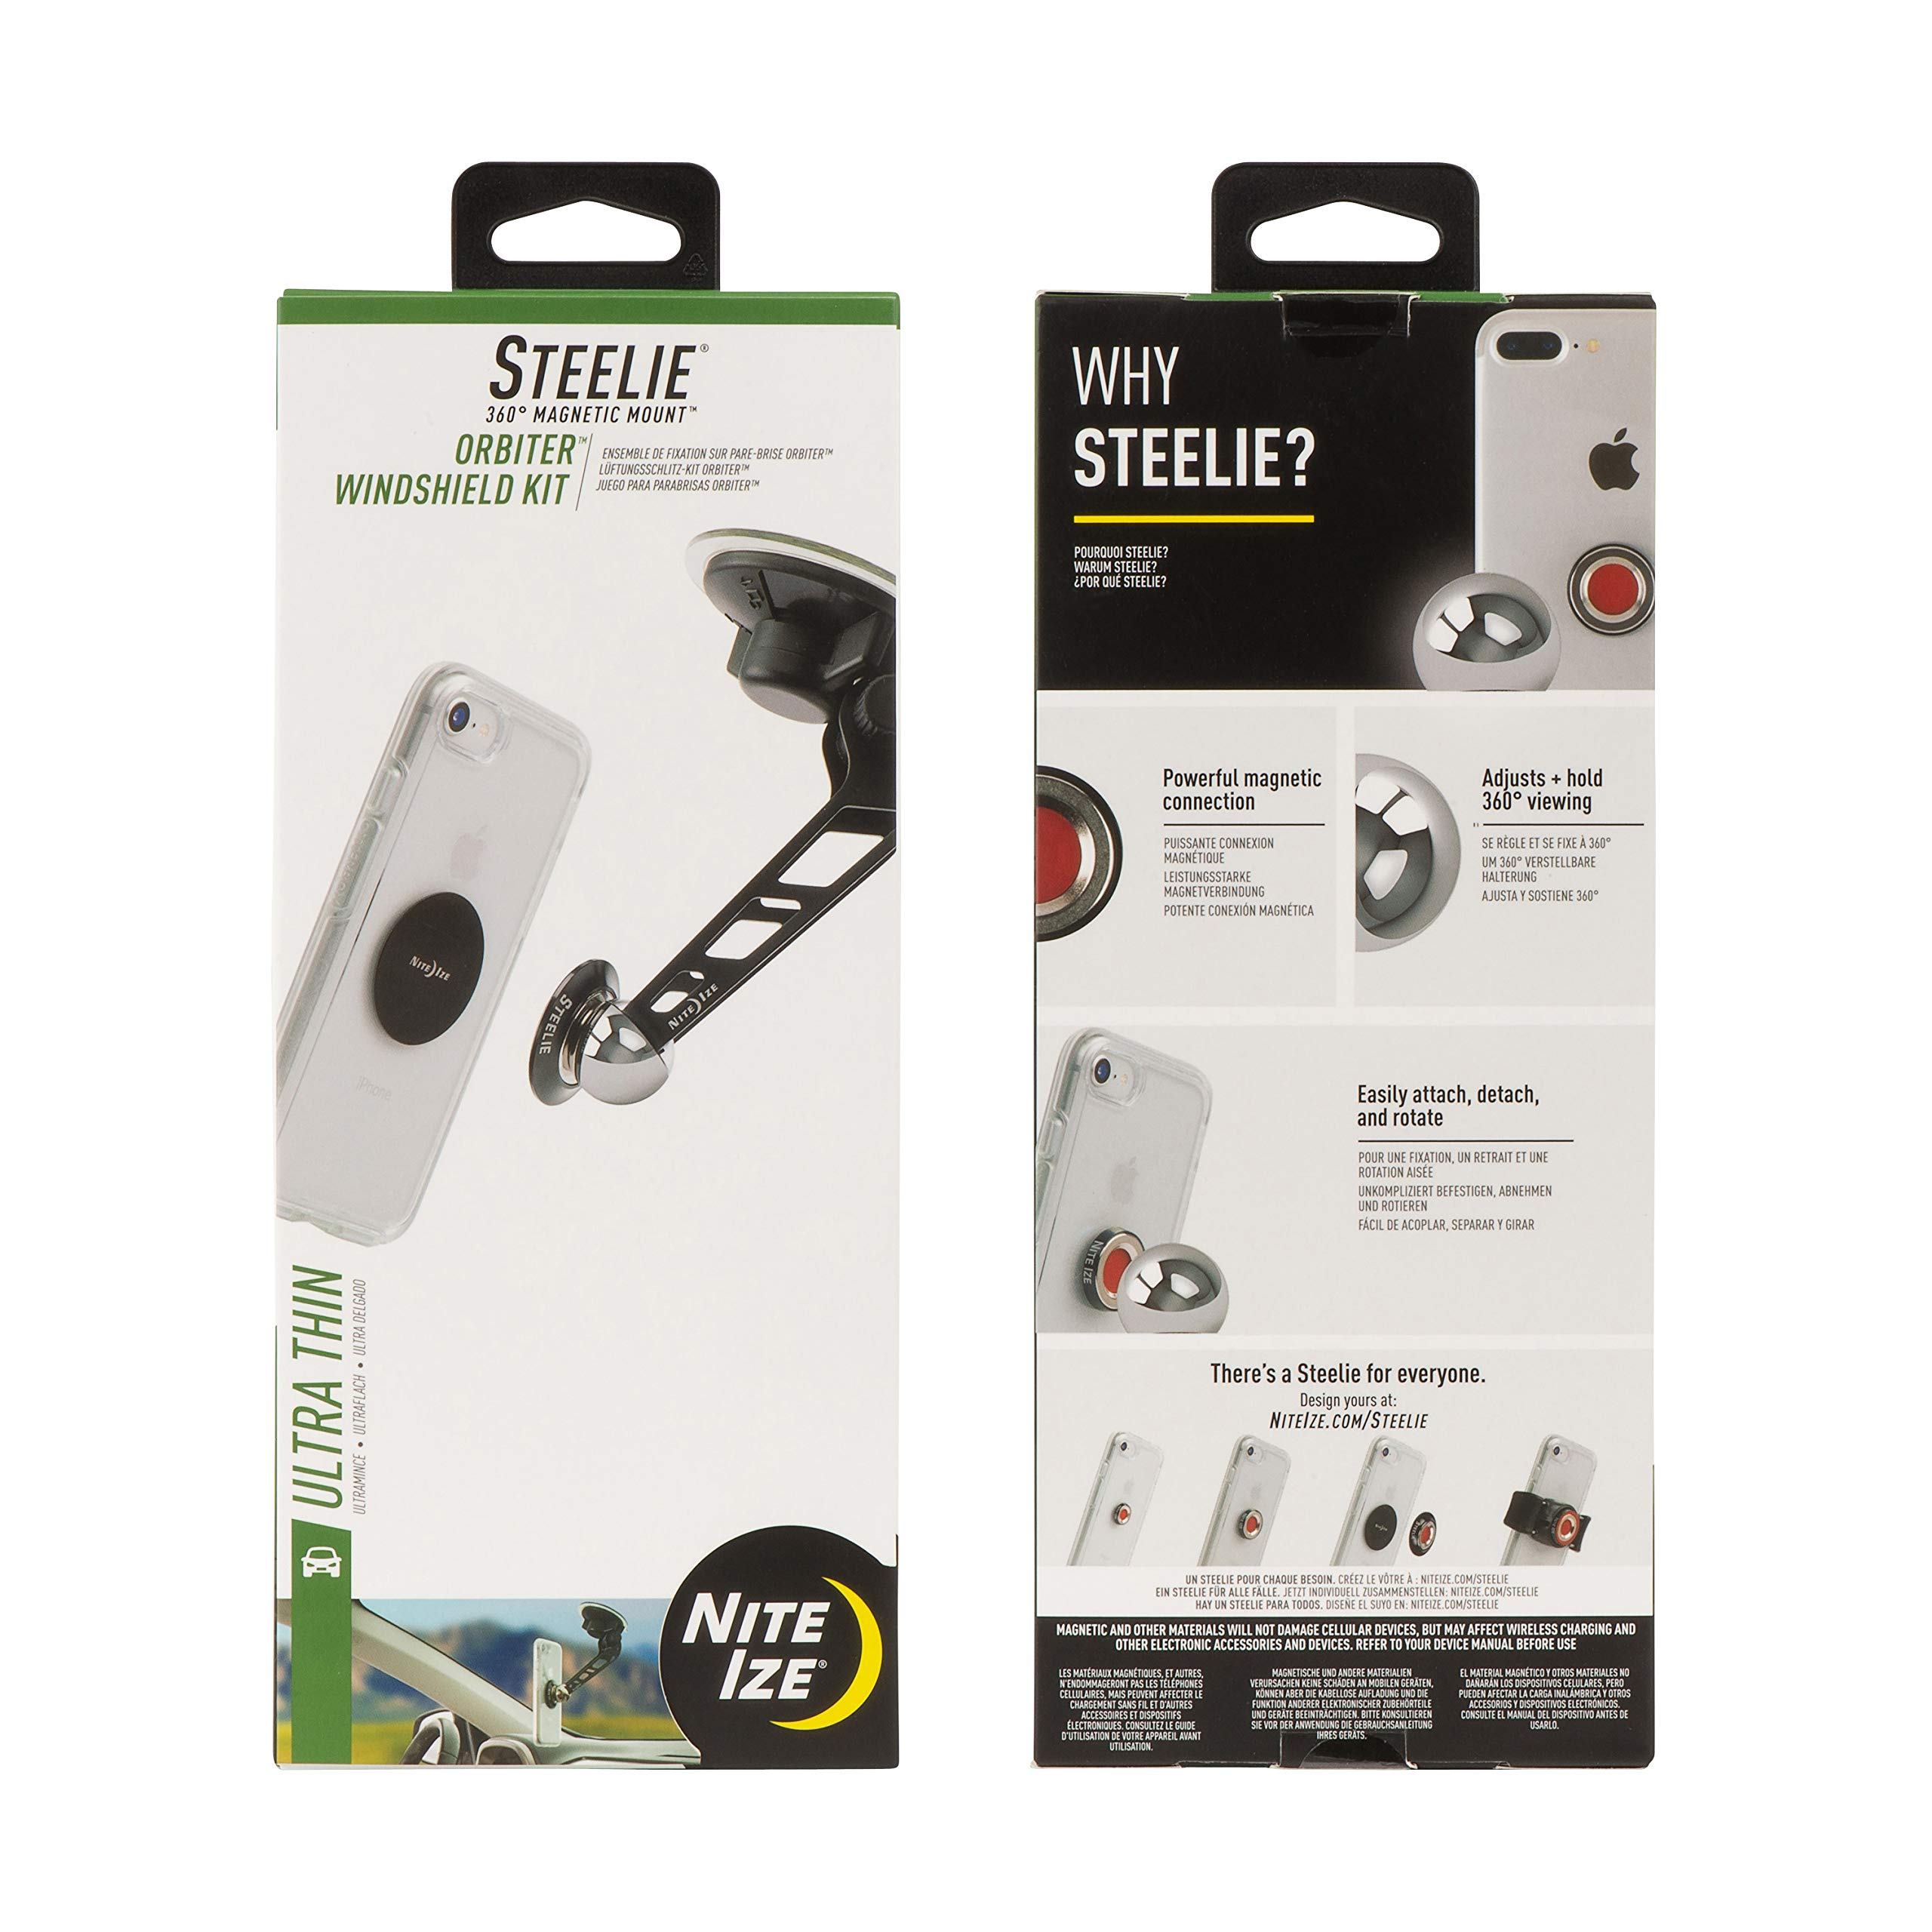 Nite Ize Original Steelie Orbiter Windshield Mount Kit - Low Profile Magnetic Car Windshield Mount for Smartphones